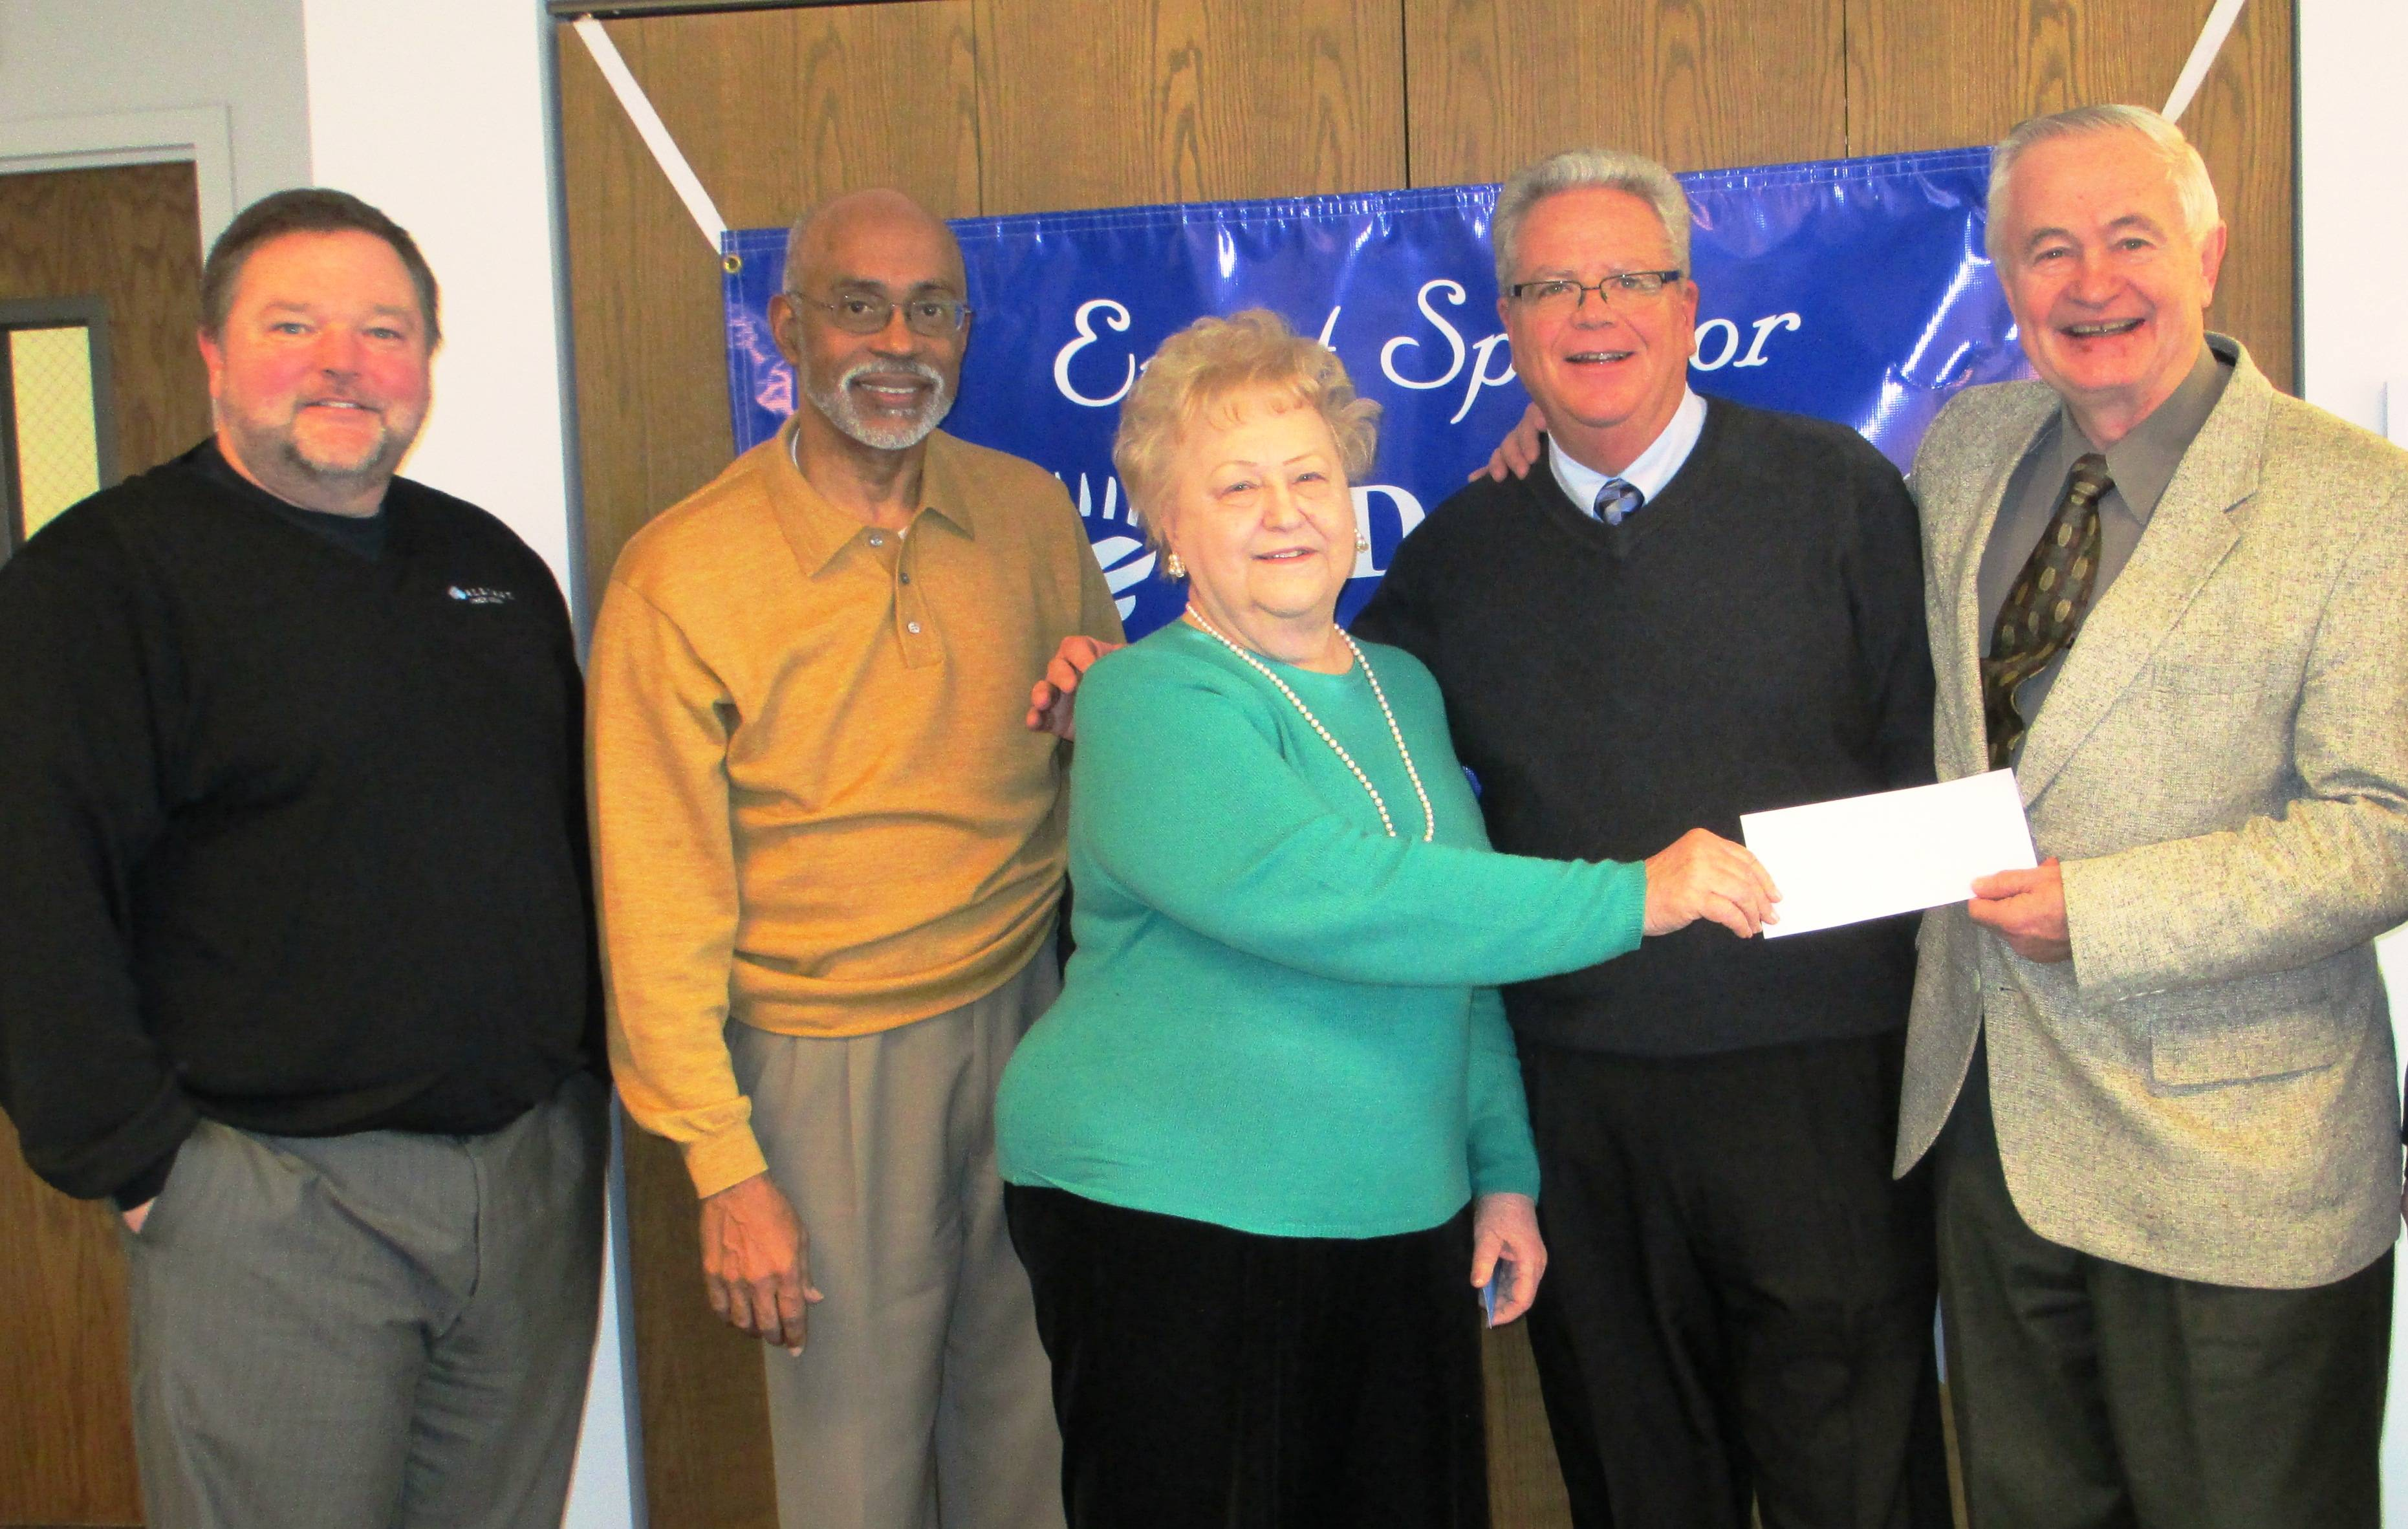 From left, Rich Holke, Alliant Credit Union; Charles L. Reid, Pastor Bethesda Worship Center; Rosemary Argus, Executive Director of the Des Plaines Community Foundation; Dan Fink, Juno Lighting Group and Eckhard Blaumueller